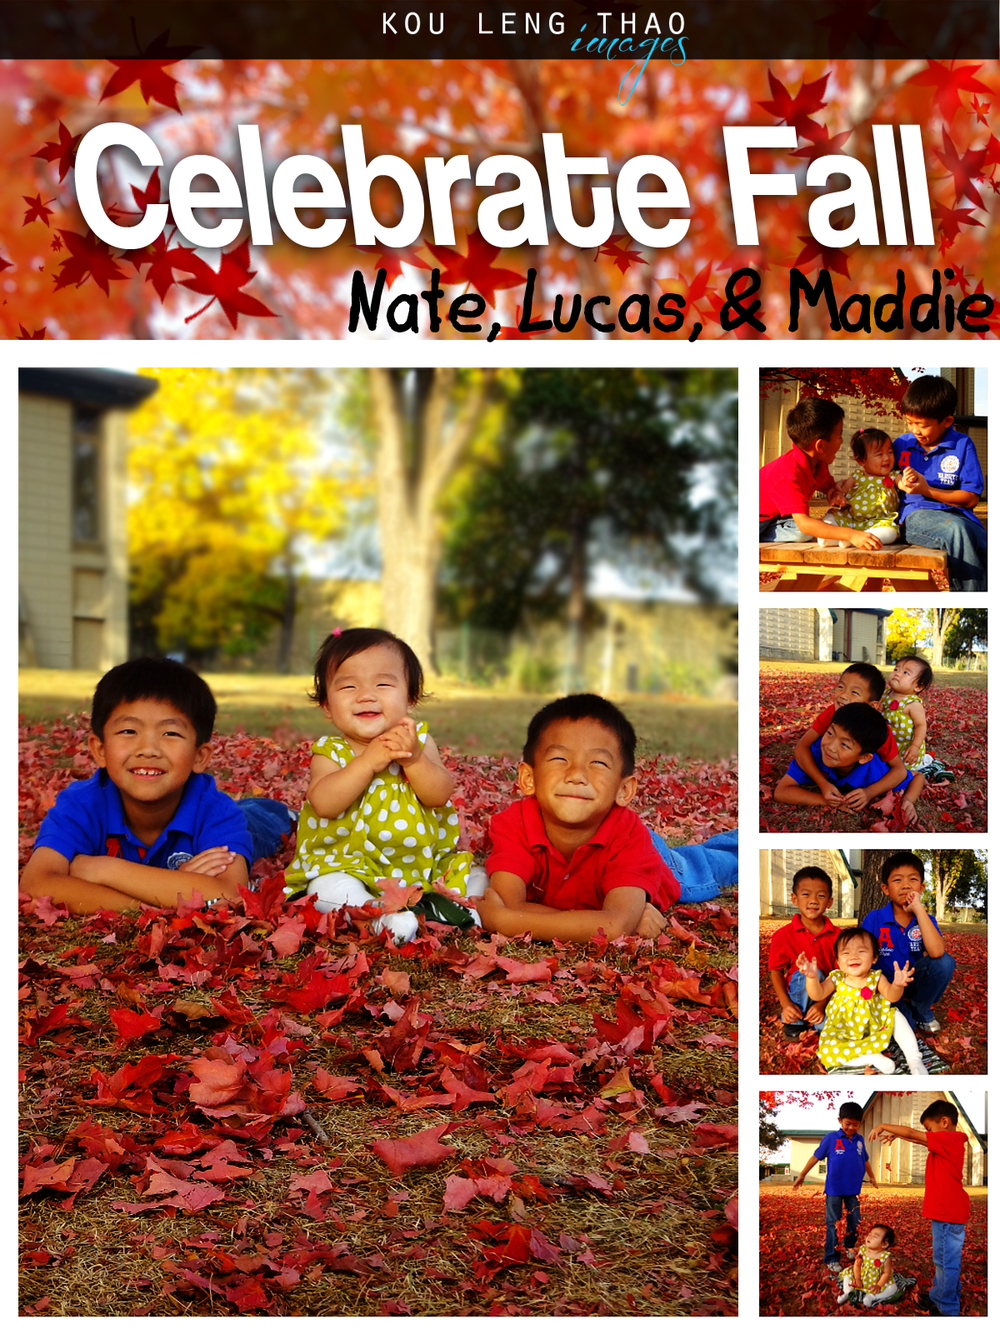 7d869-nate-lucas-maddie-fall2012.png